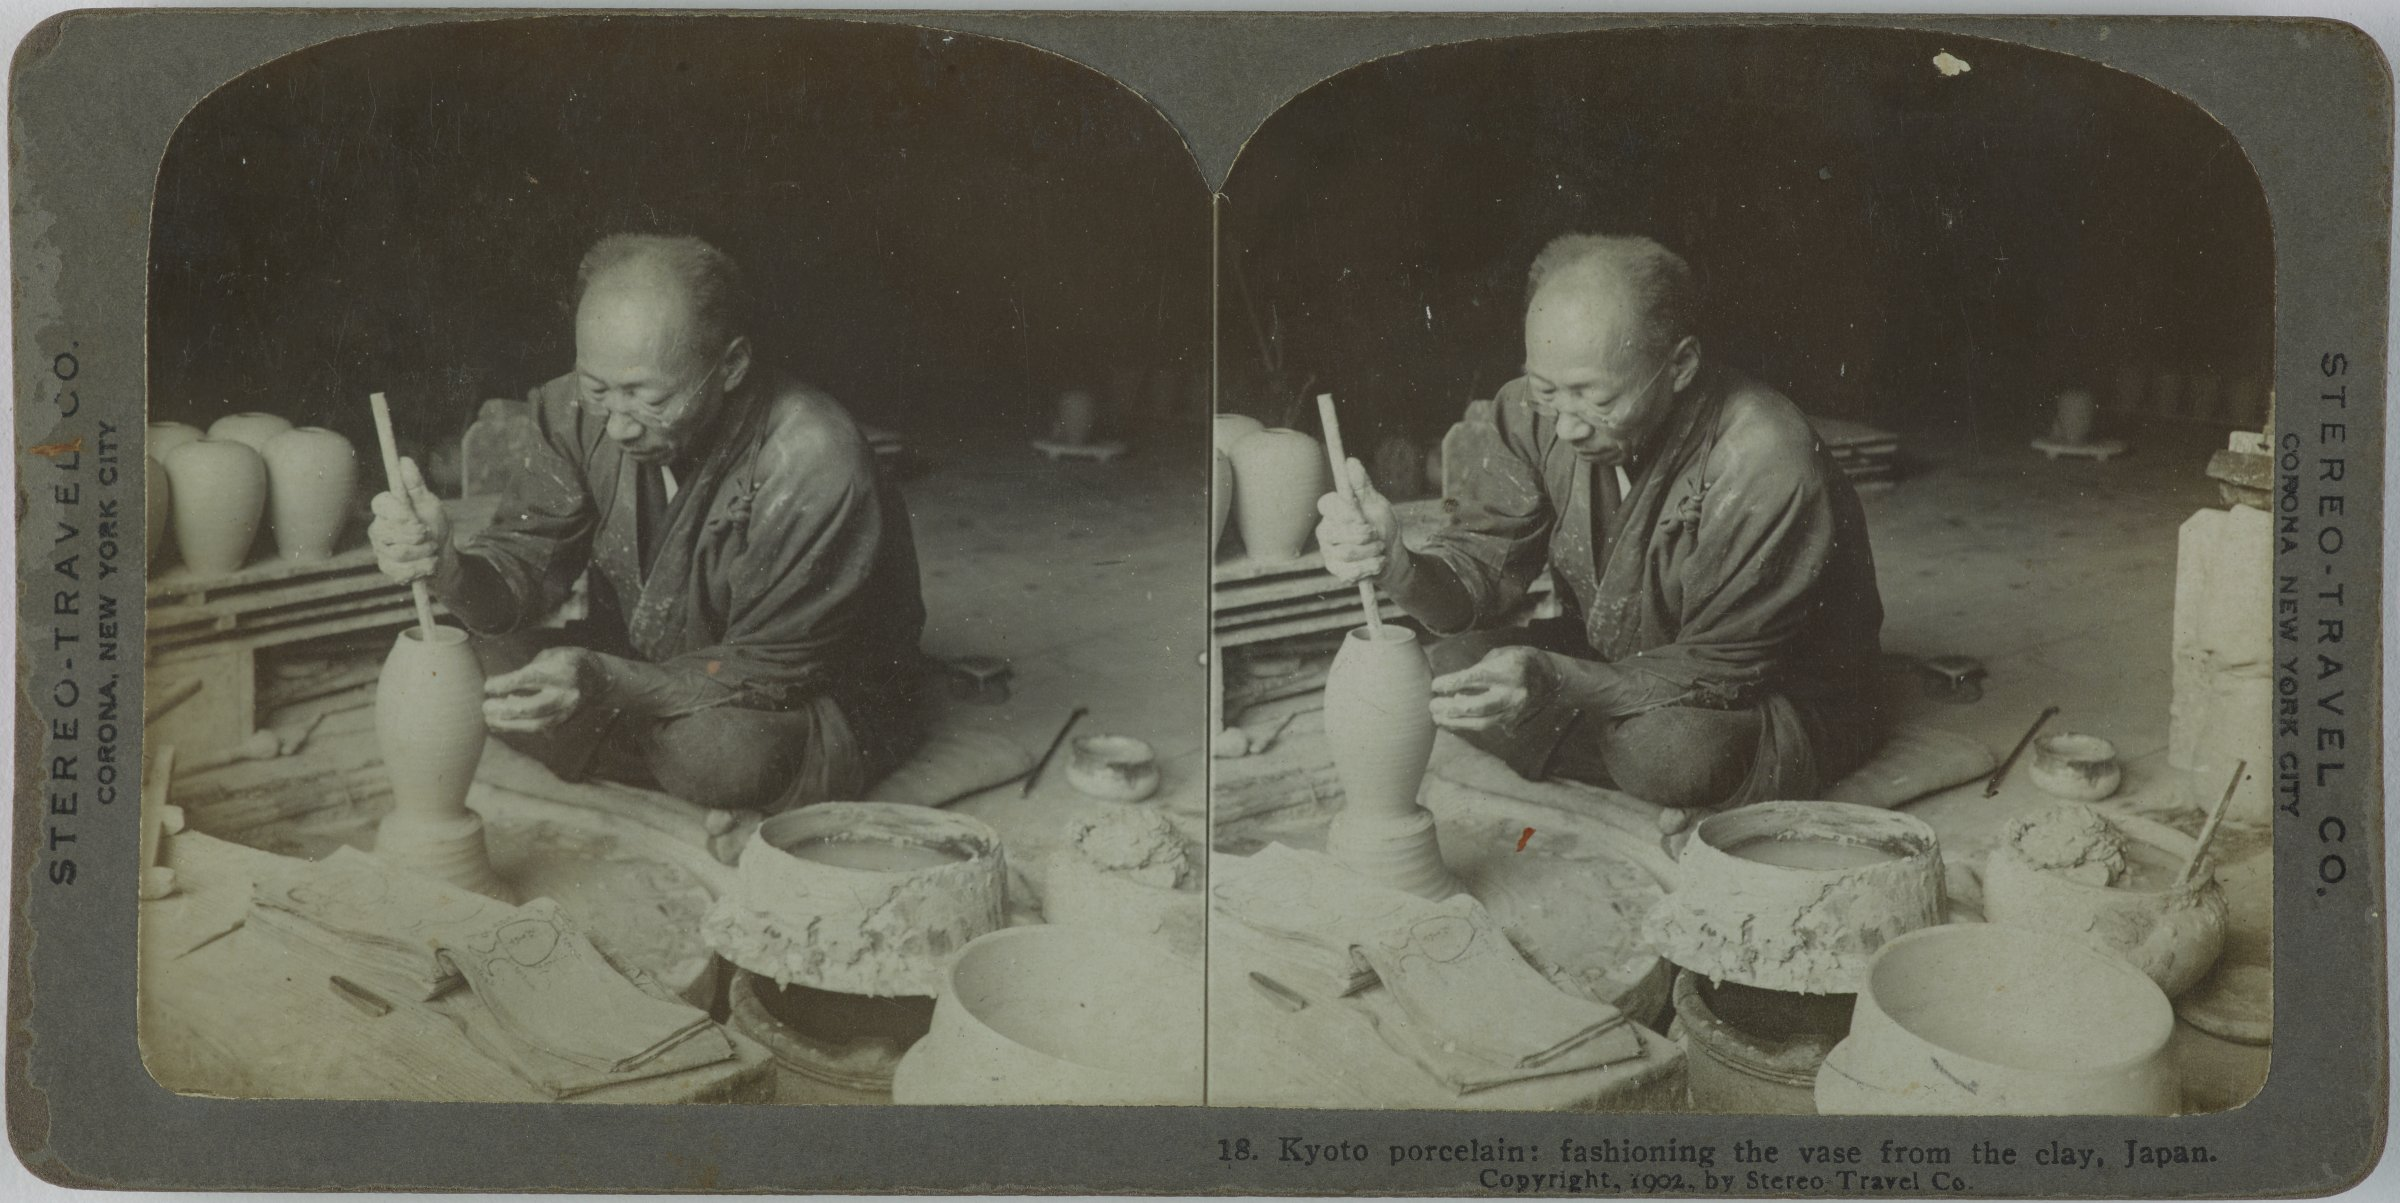 Kyoto porcelain: fashioning the vase from the clay, Japan, Stereo-Travel Co., gelatin silver prints mounted on card